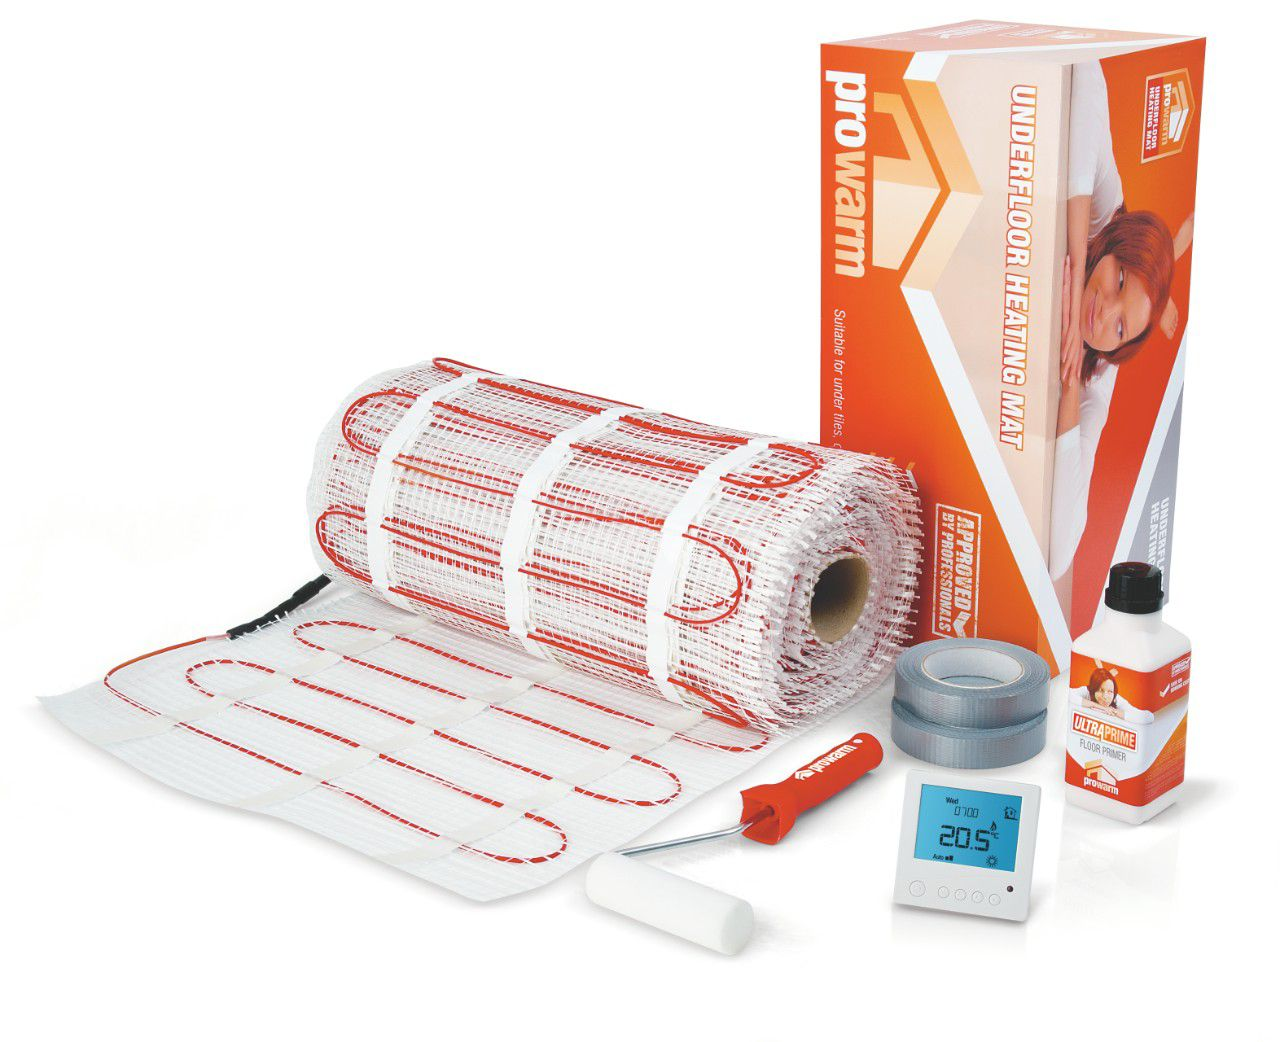 Electric Underfloor Heating Kits